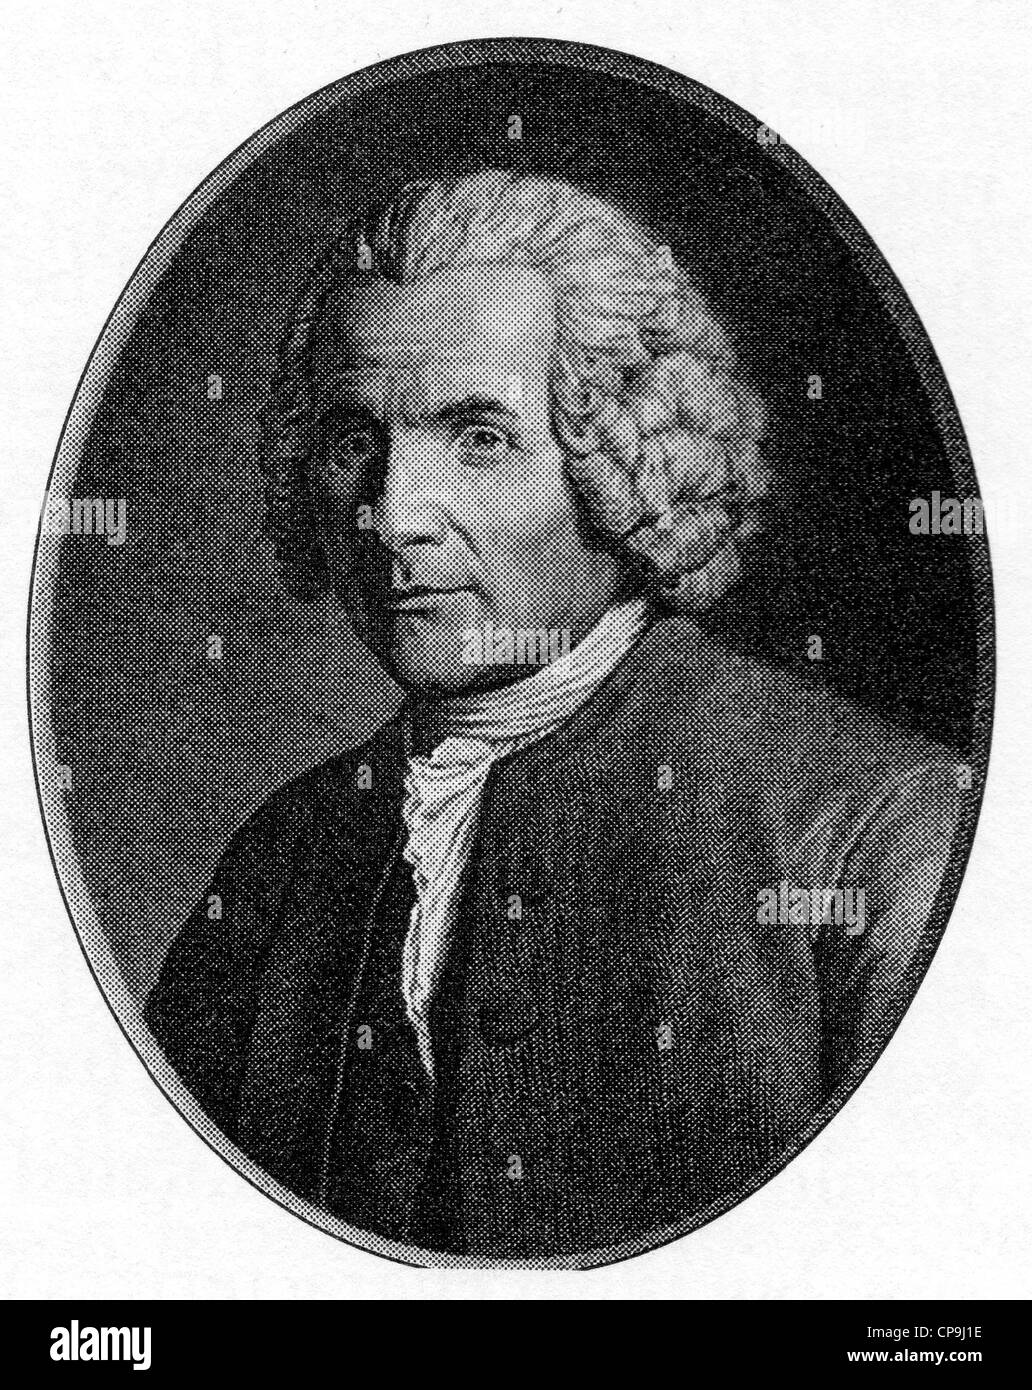 Jean-Jacques Rousseau, Genevan philosopher, author and composer - Stock Image